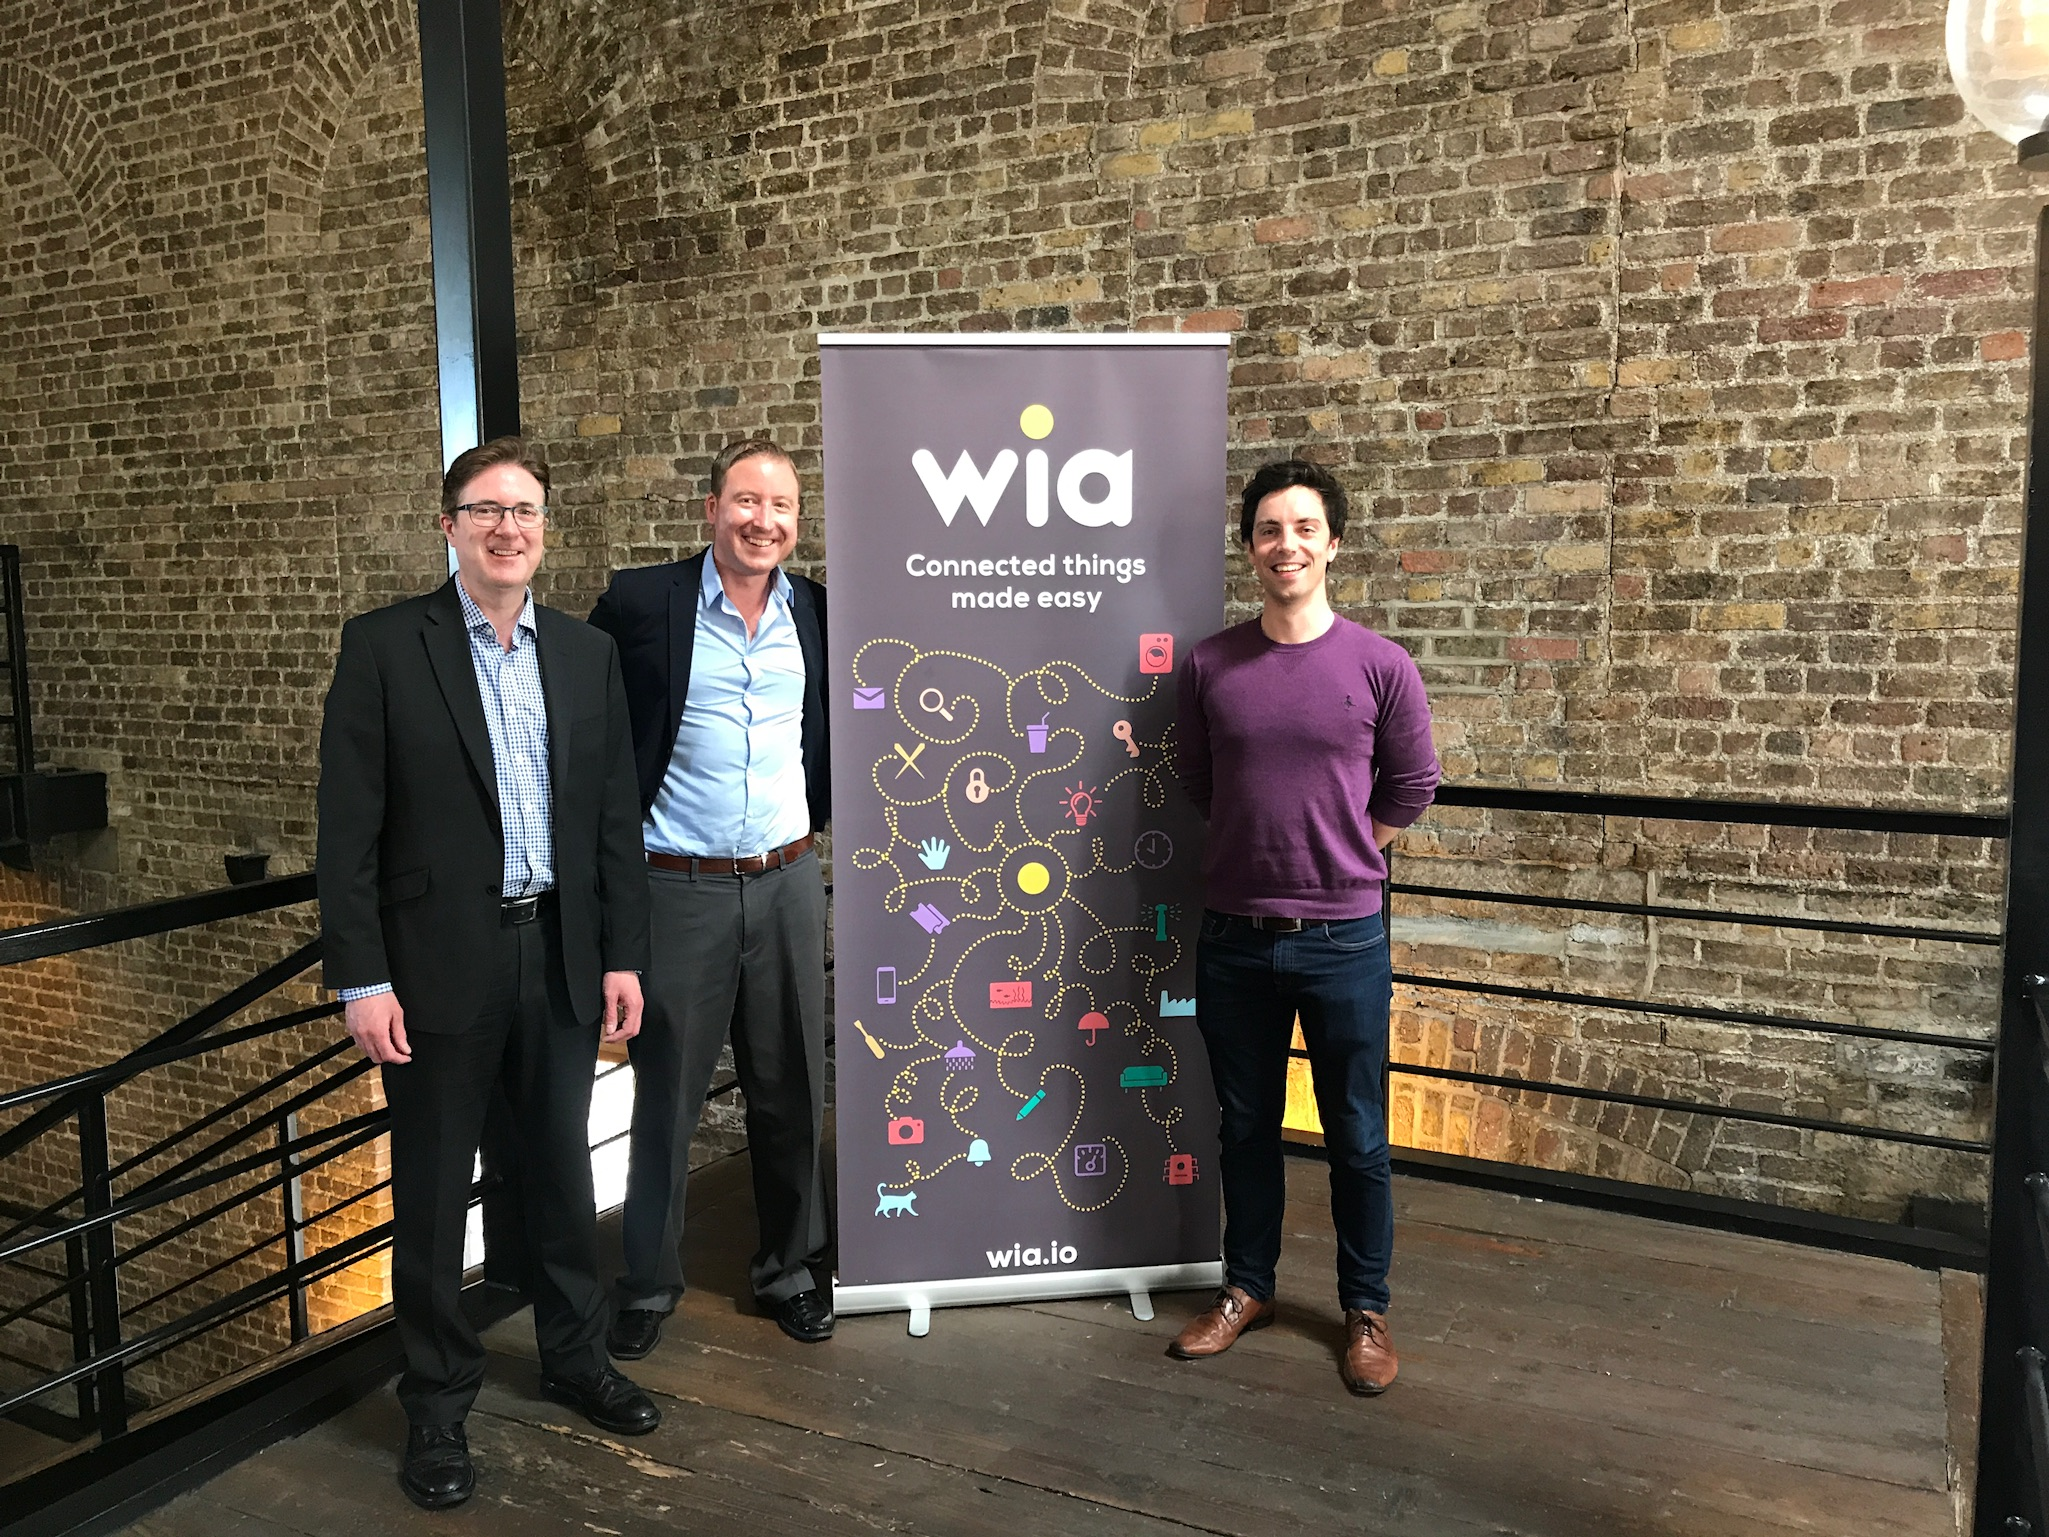 Wia, Suir Valley and Enterprise Ireland